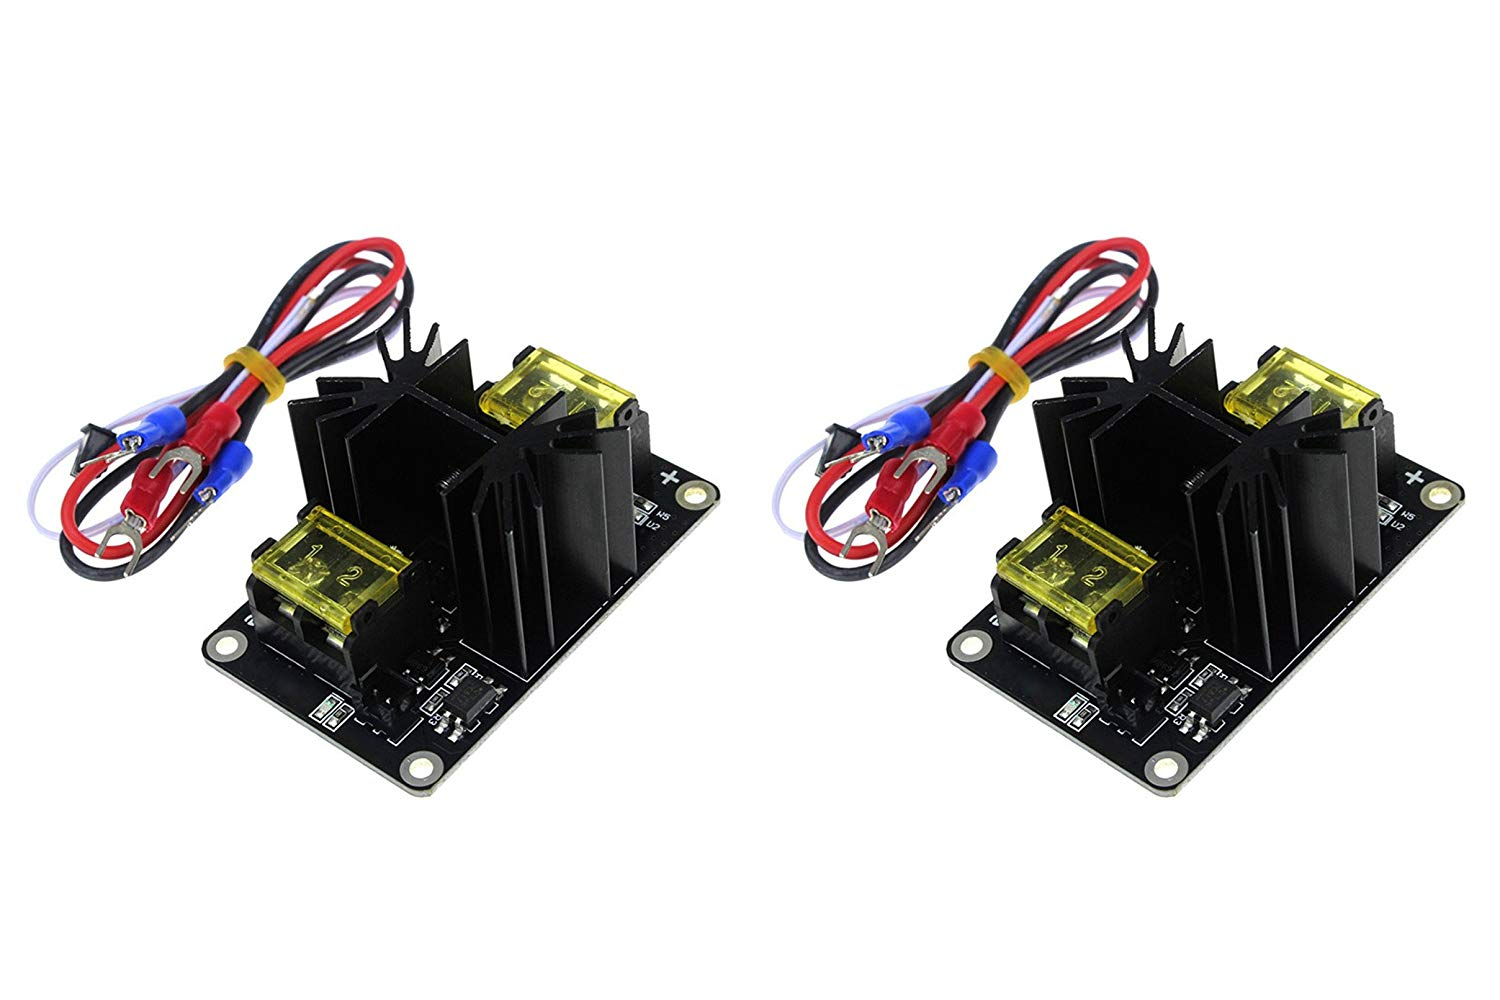 Active Components Intelligent 2pcs 30a Mos Tube Heat Bed Power Module Expansion Board Mos Tube Hotend Replacement With Cables For 3d Printer Parts Electronic Components & Supplies